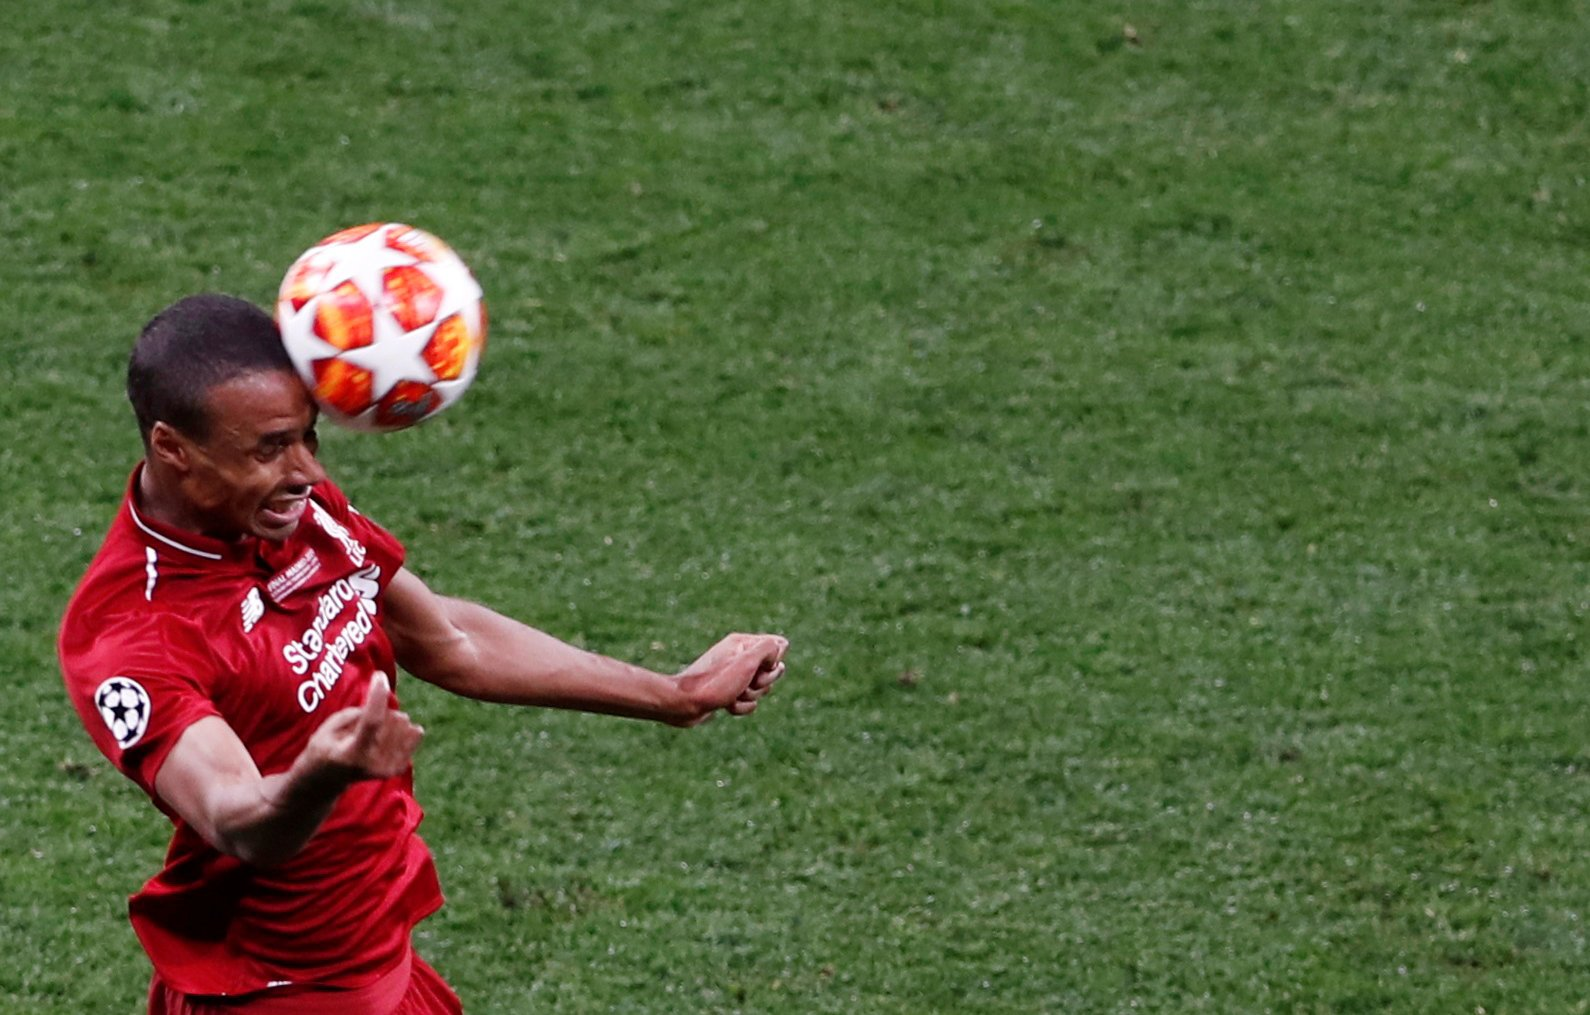 Liverpool: Joel Matip unlikely to feature for the Reds before Christmas